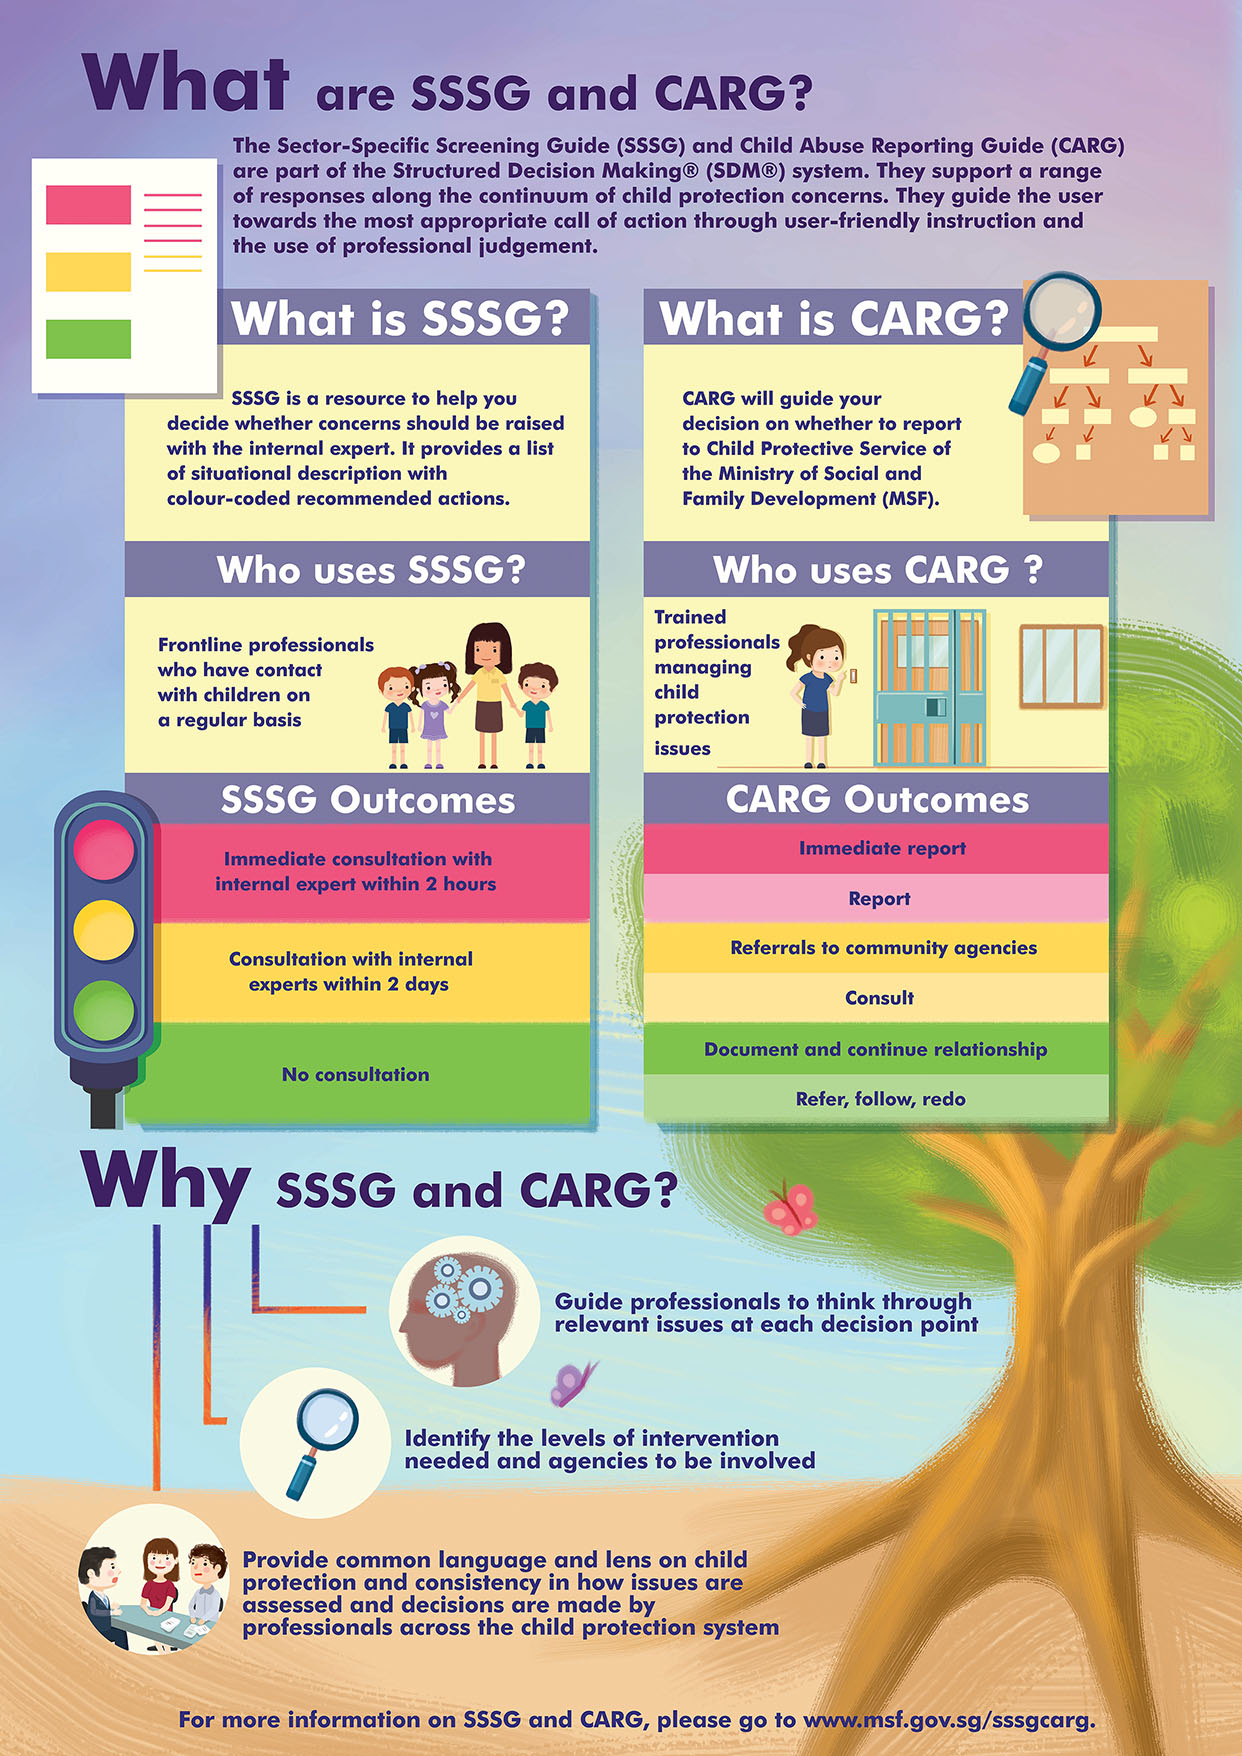 What are SSSG and CARG?